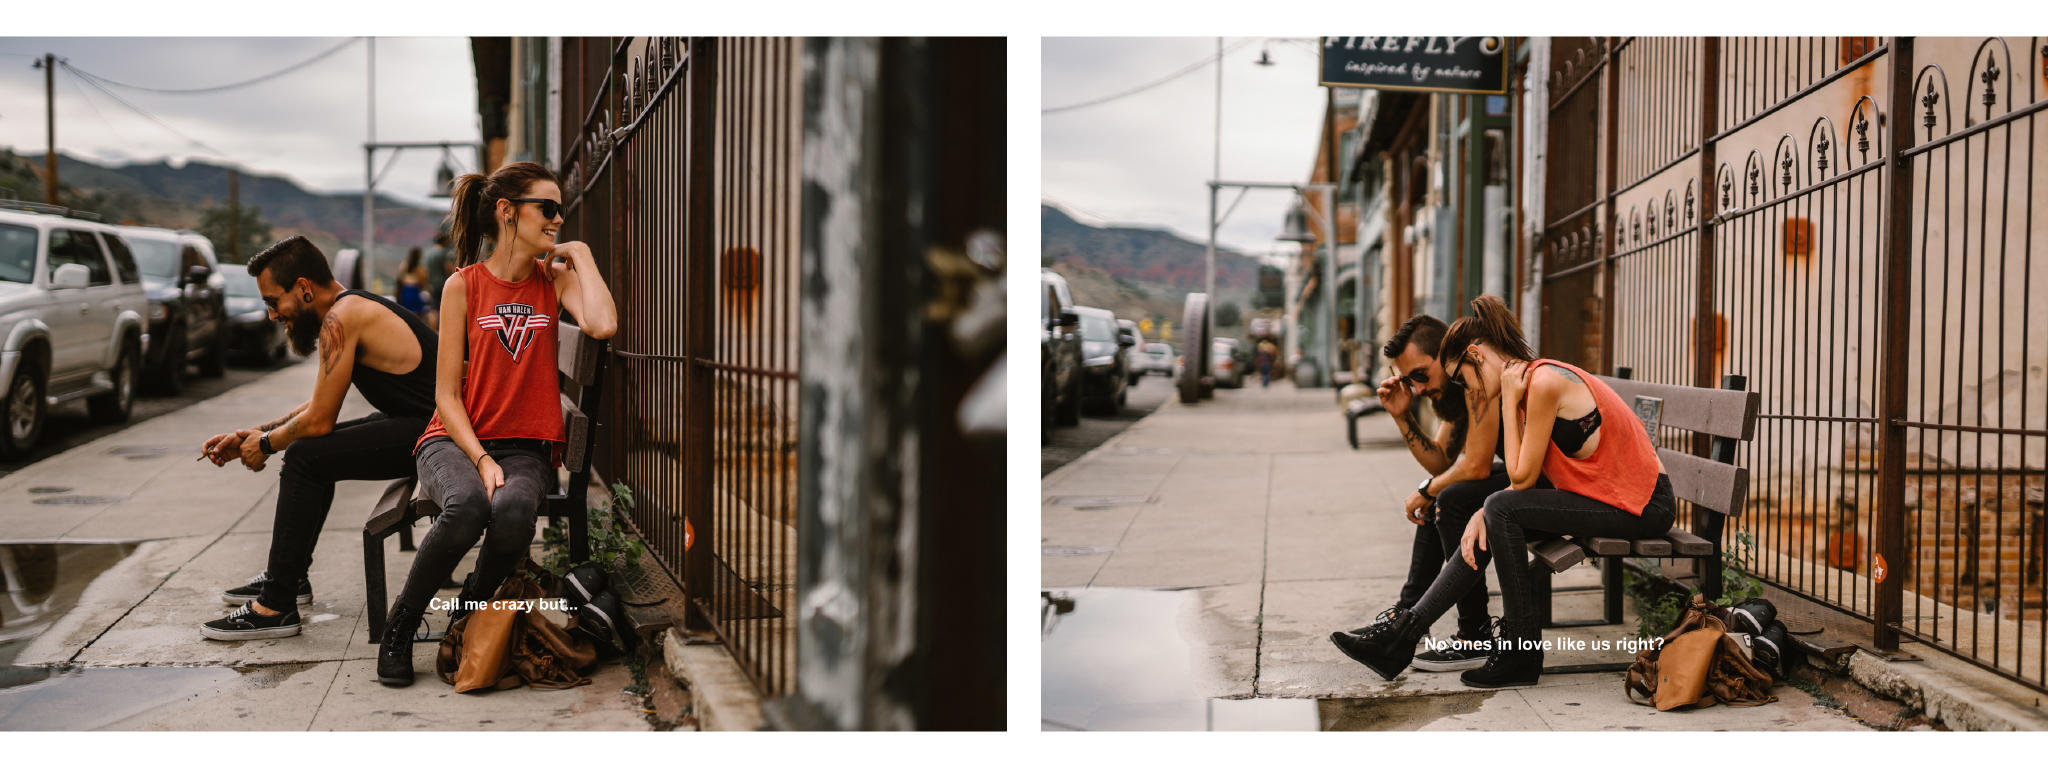 san diego wedding   photographer | collage of man and woman sitting on bench with metal gate   behind them